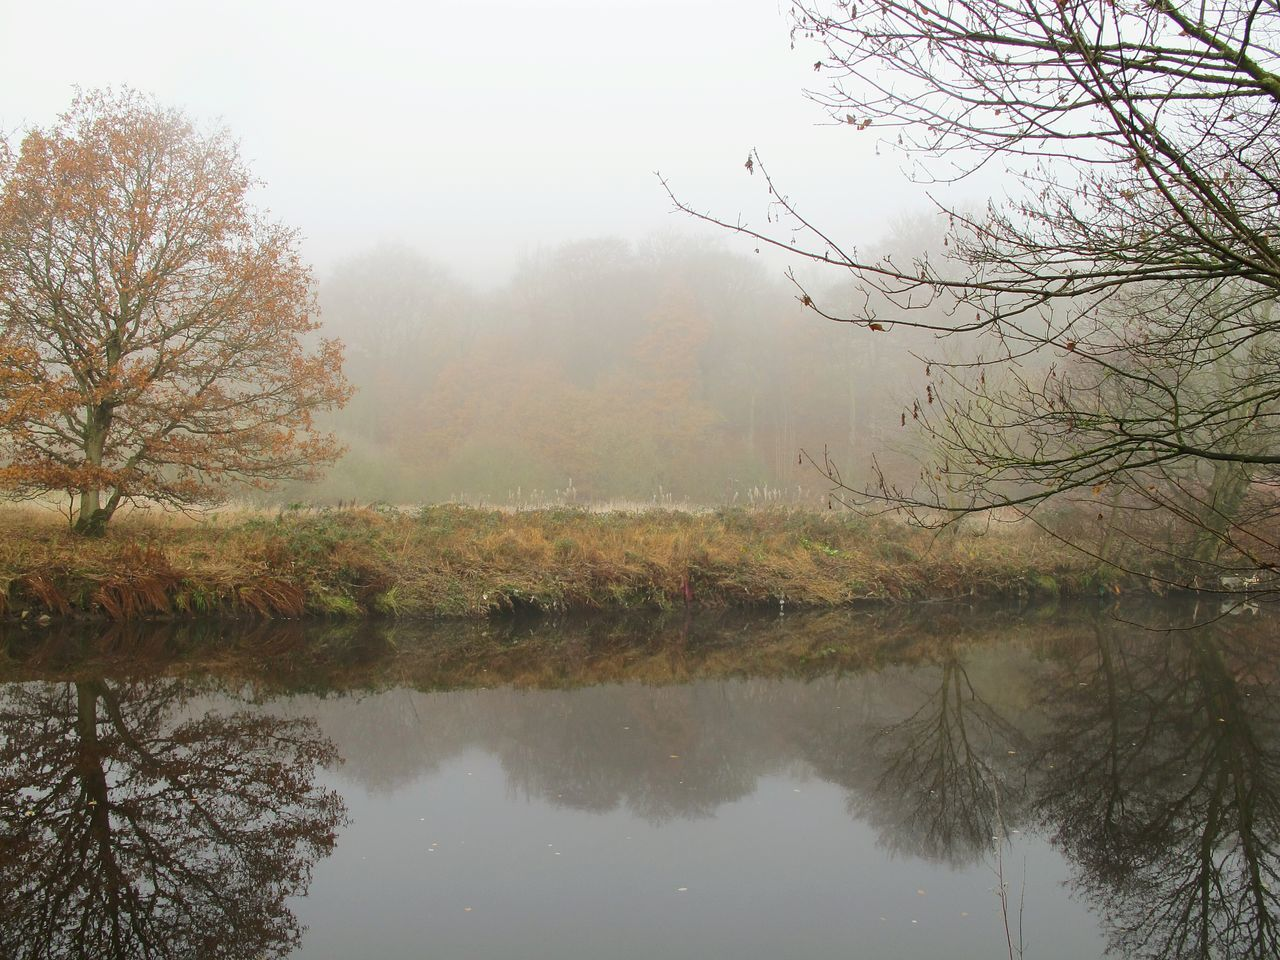 Foggymornings Frosty Days Water River Bank  Tranquil Scene Beauty In Nature Scenics Fineartphotography EyeEmbestshots Foggy Morning Autumnbeauty Autumn Leaves Cold Temperature No People Rural Scene Reed - Grass Family Reflection WoodLand Autumn Outdoors Non-urban Scene Day Fog Winter Is Coming Tranquility Nature